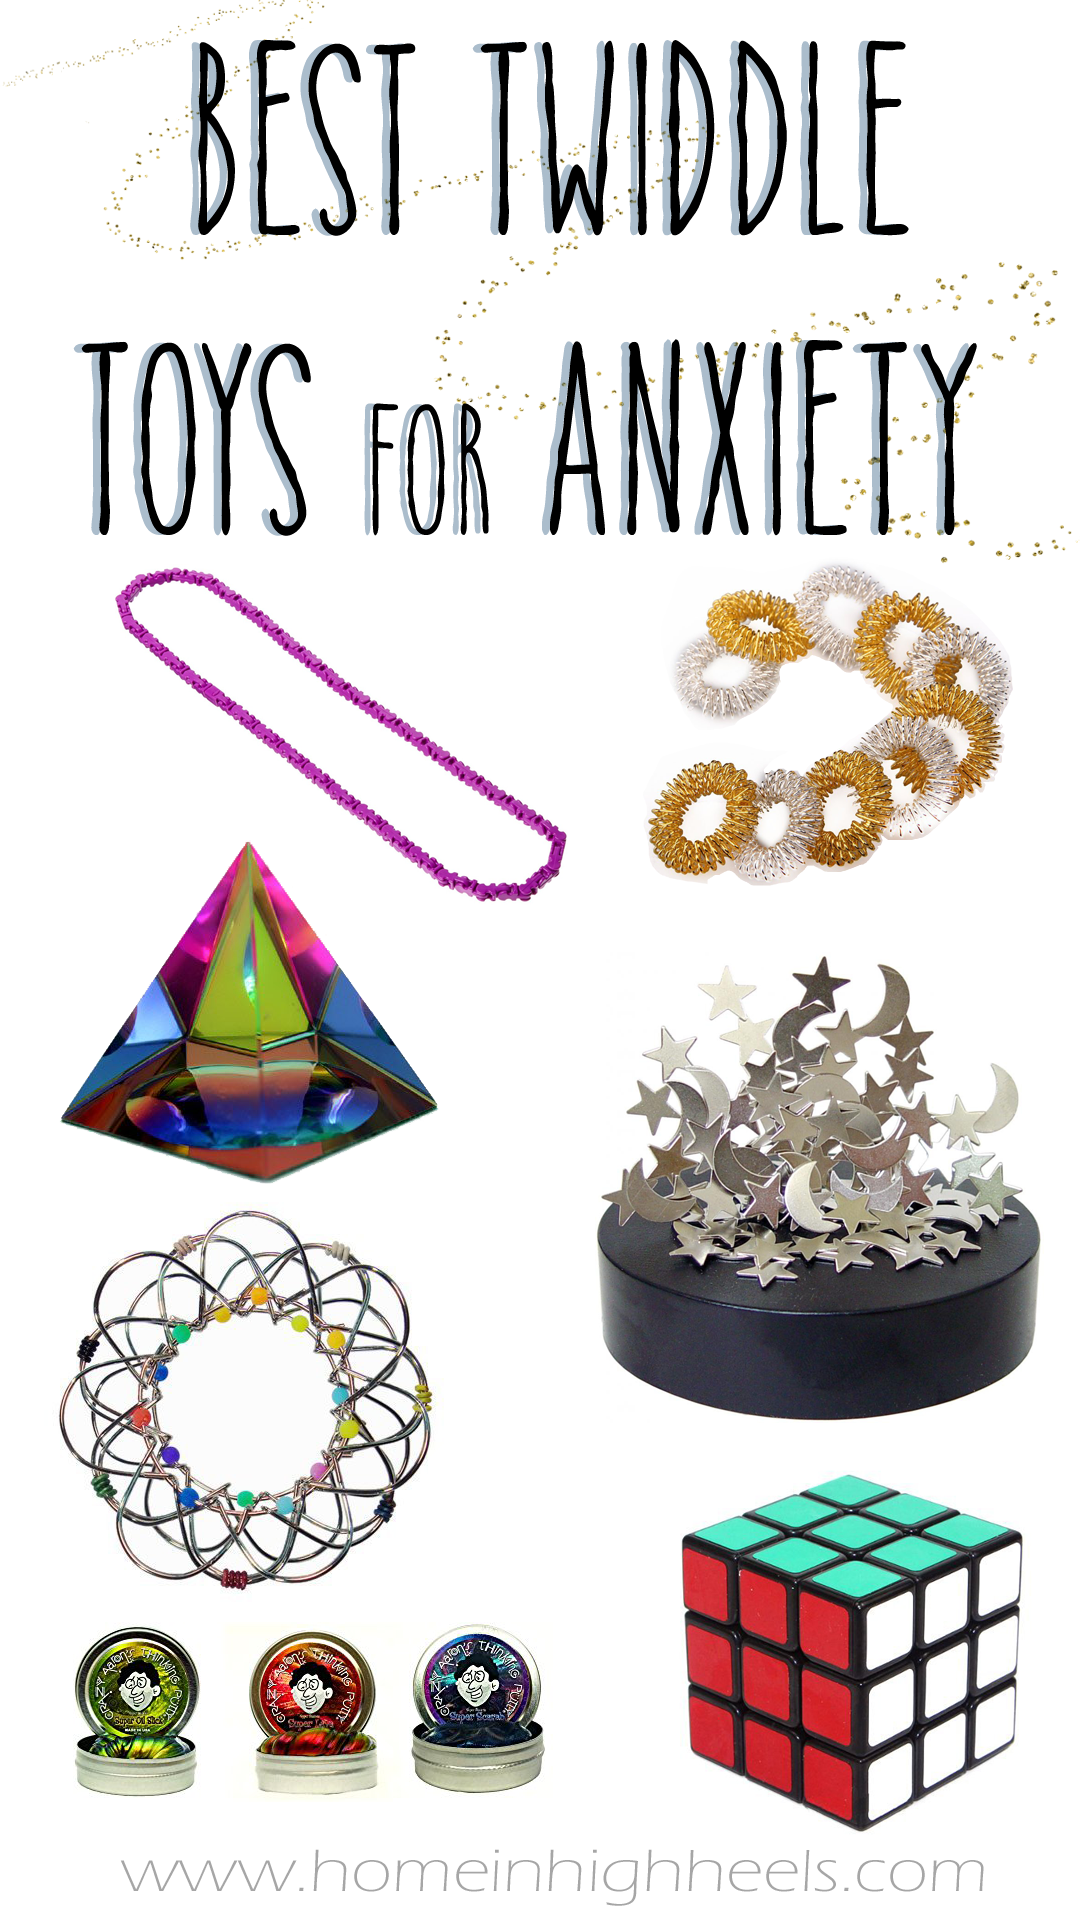 Toys For Anxiety : Best fidget twiddle fiddle wiggly toys for anxious